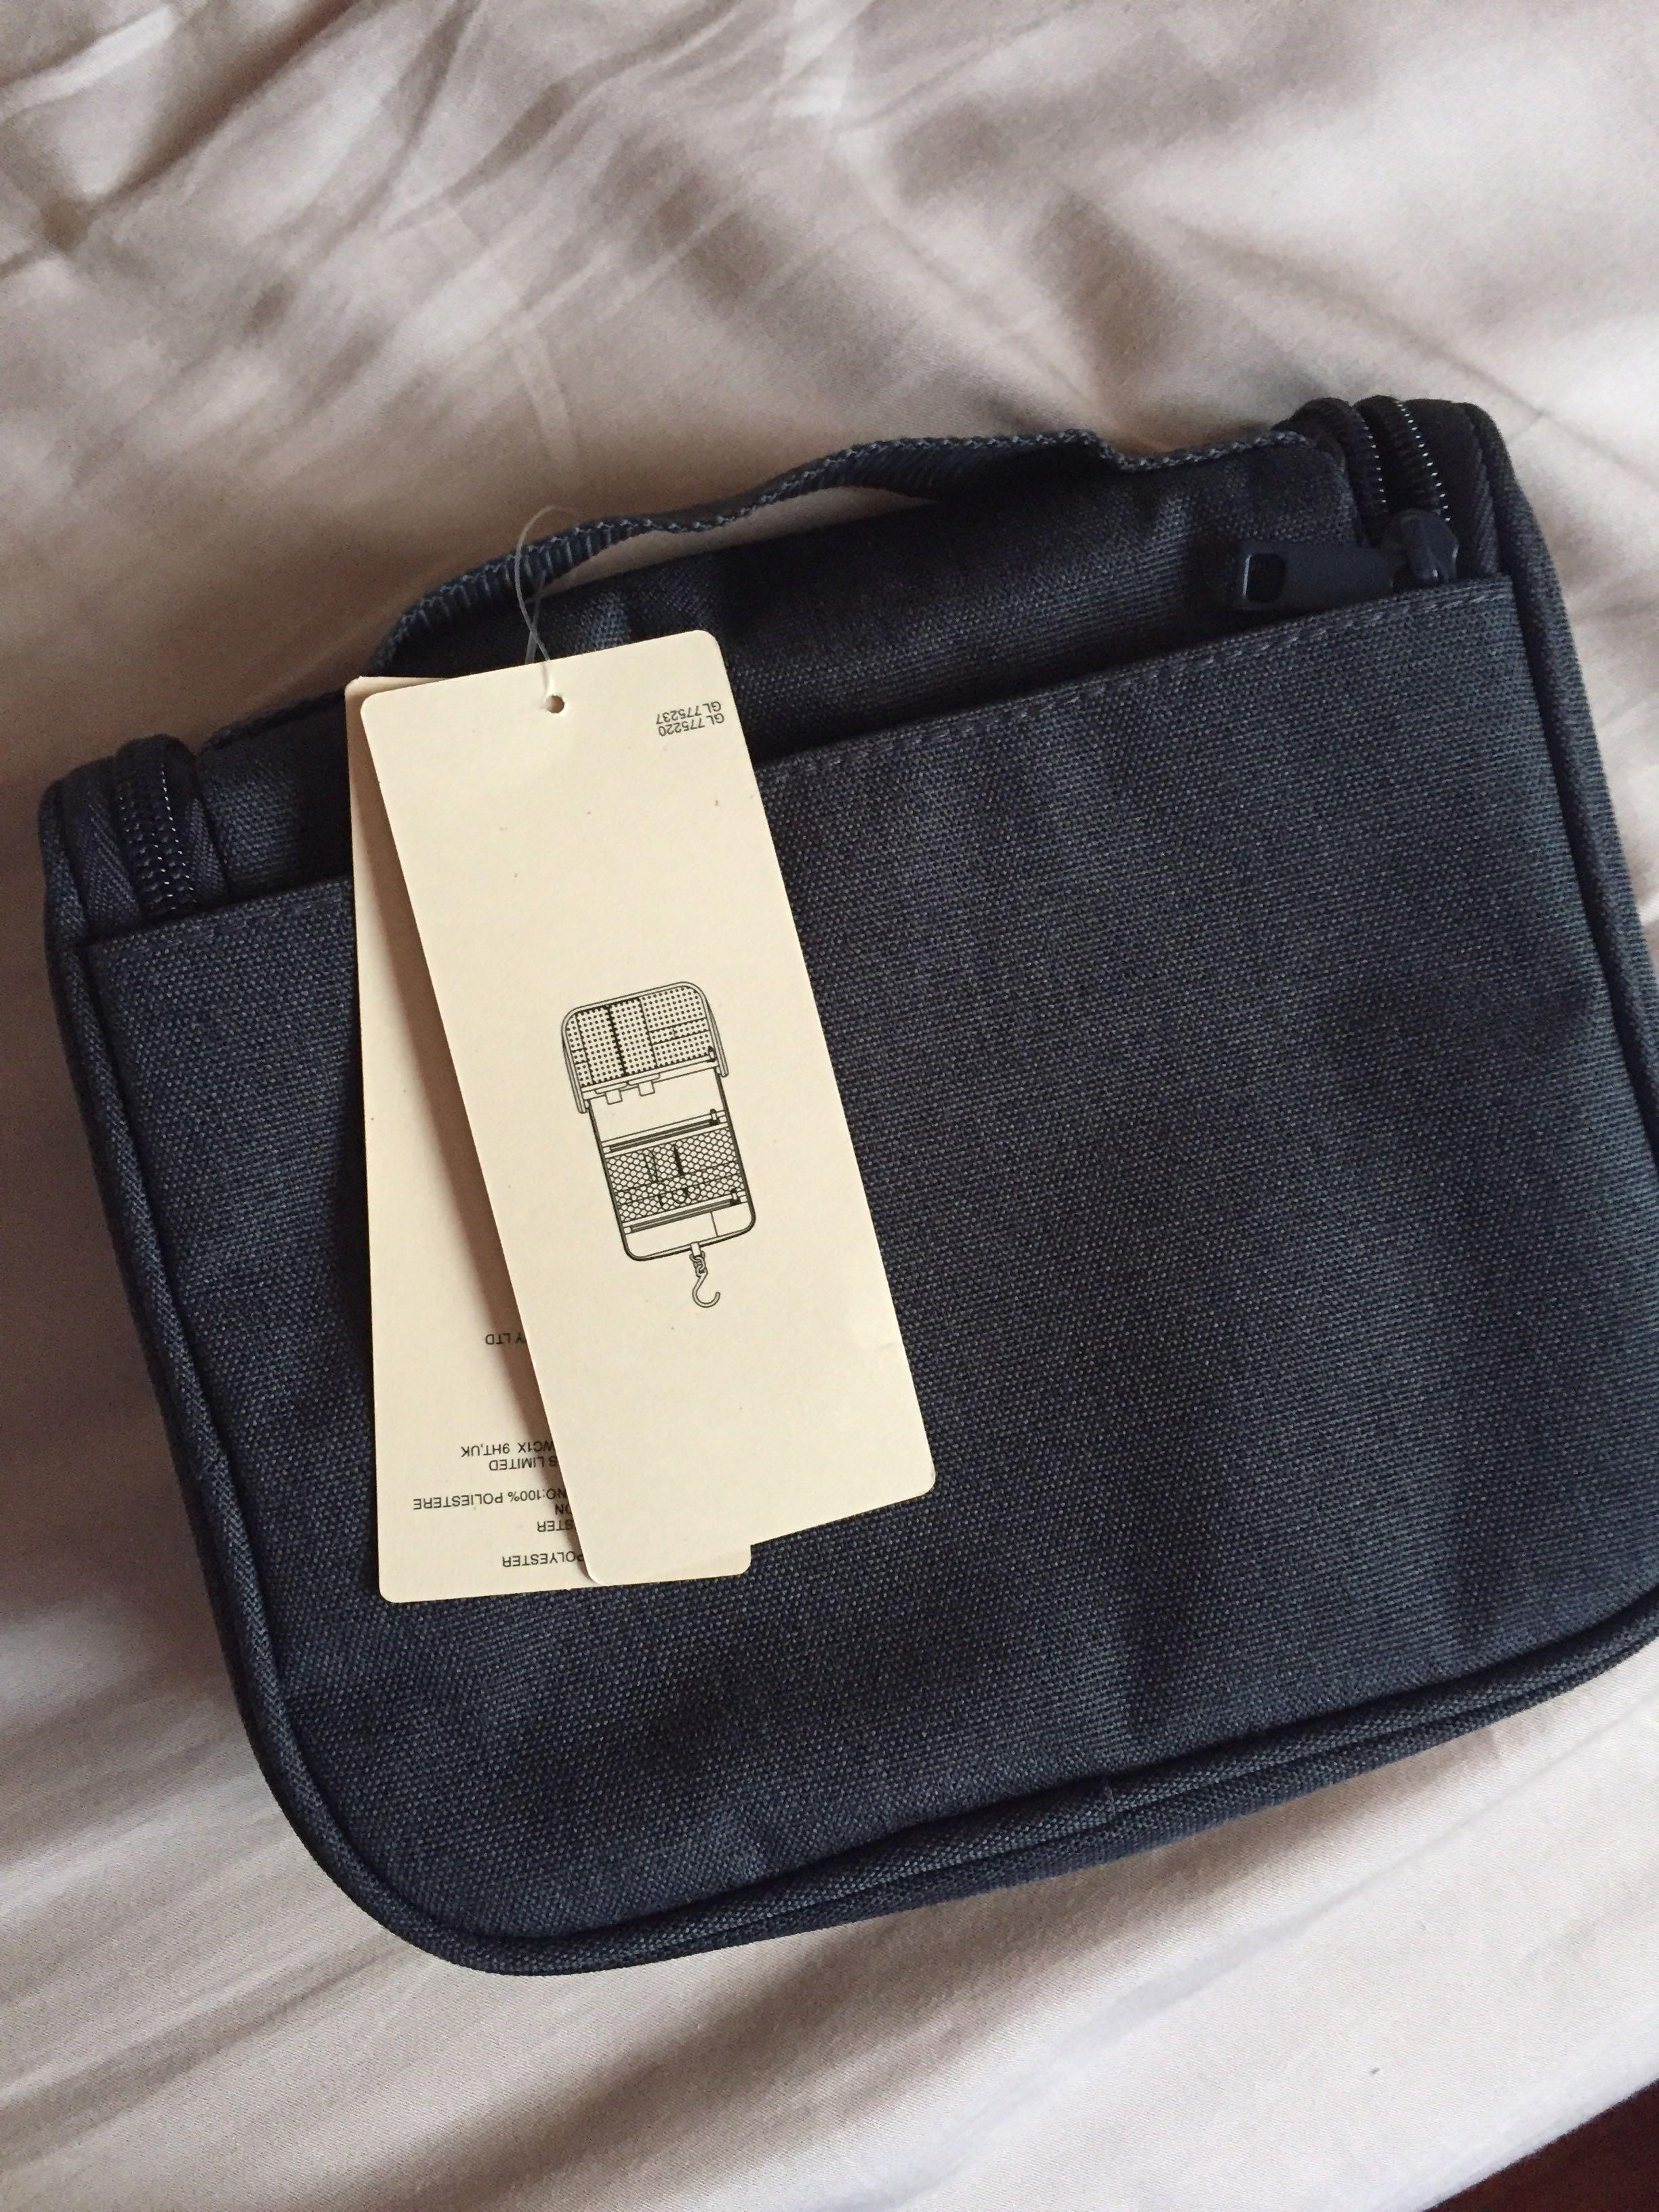 Muji Travel Storage Pouch Travel Travel Essentials Travel Accessories On Carousell